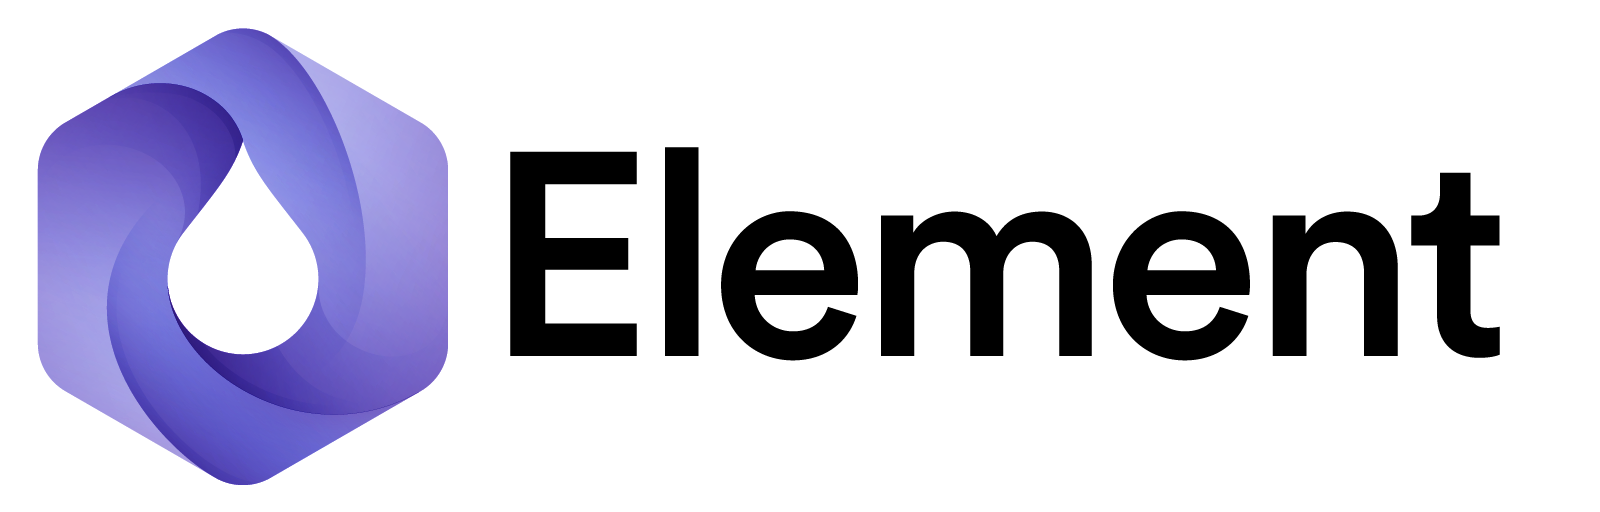 Flood Element Logo